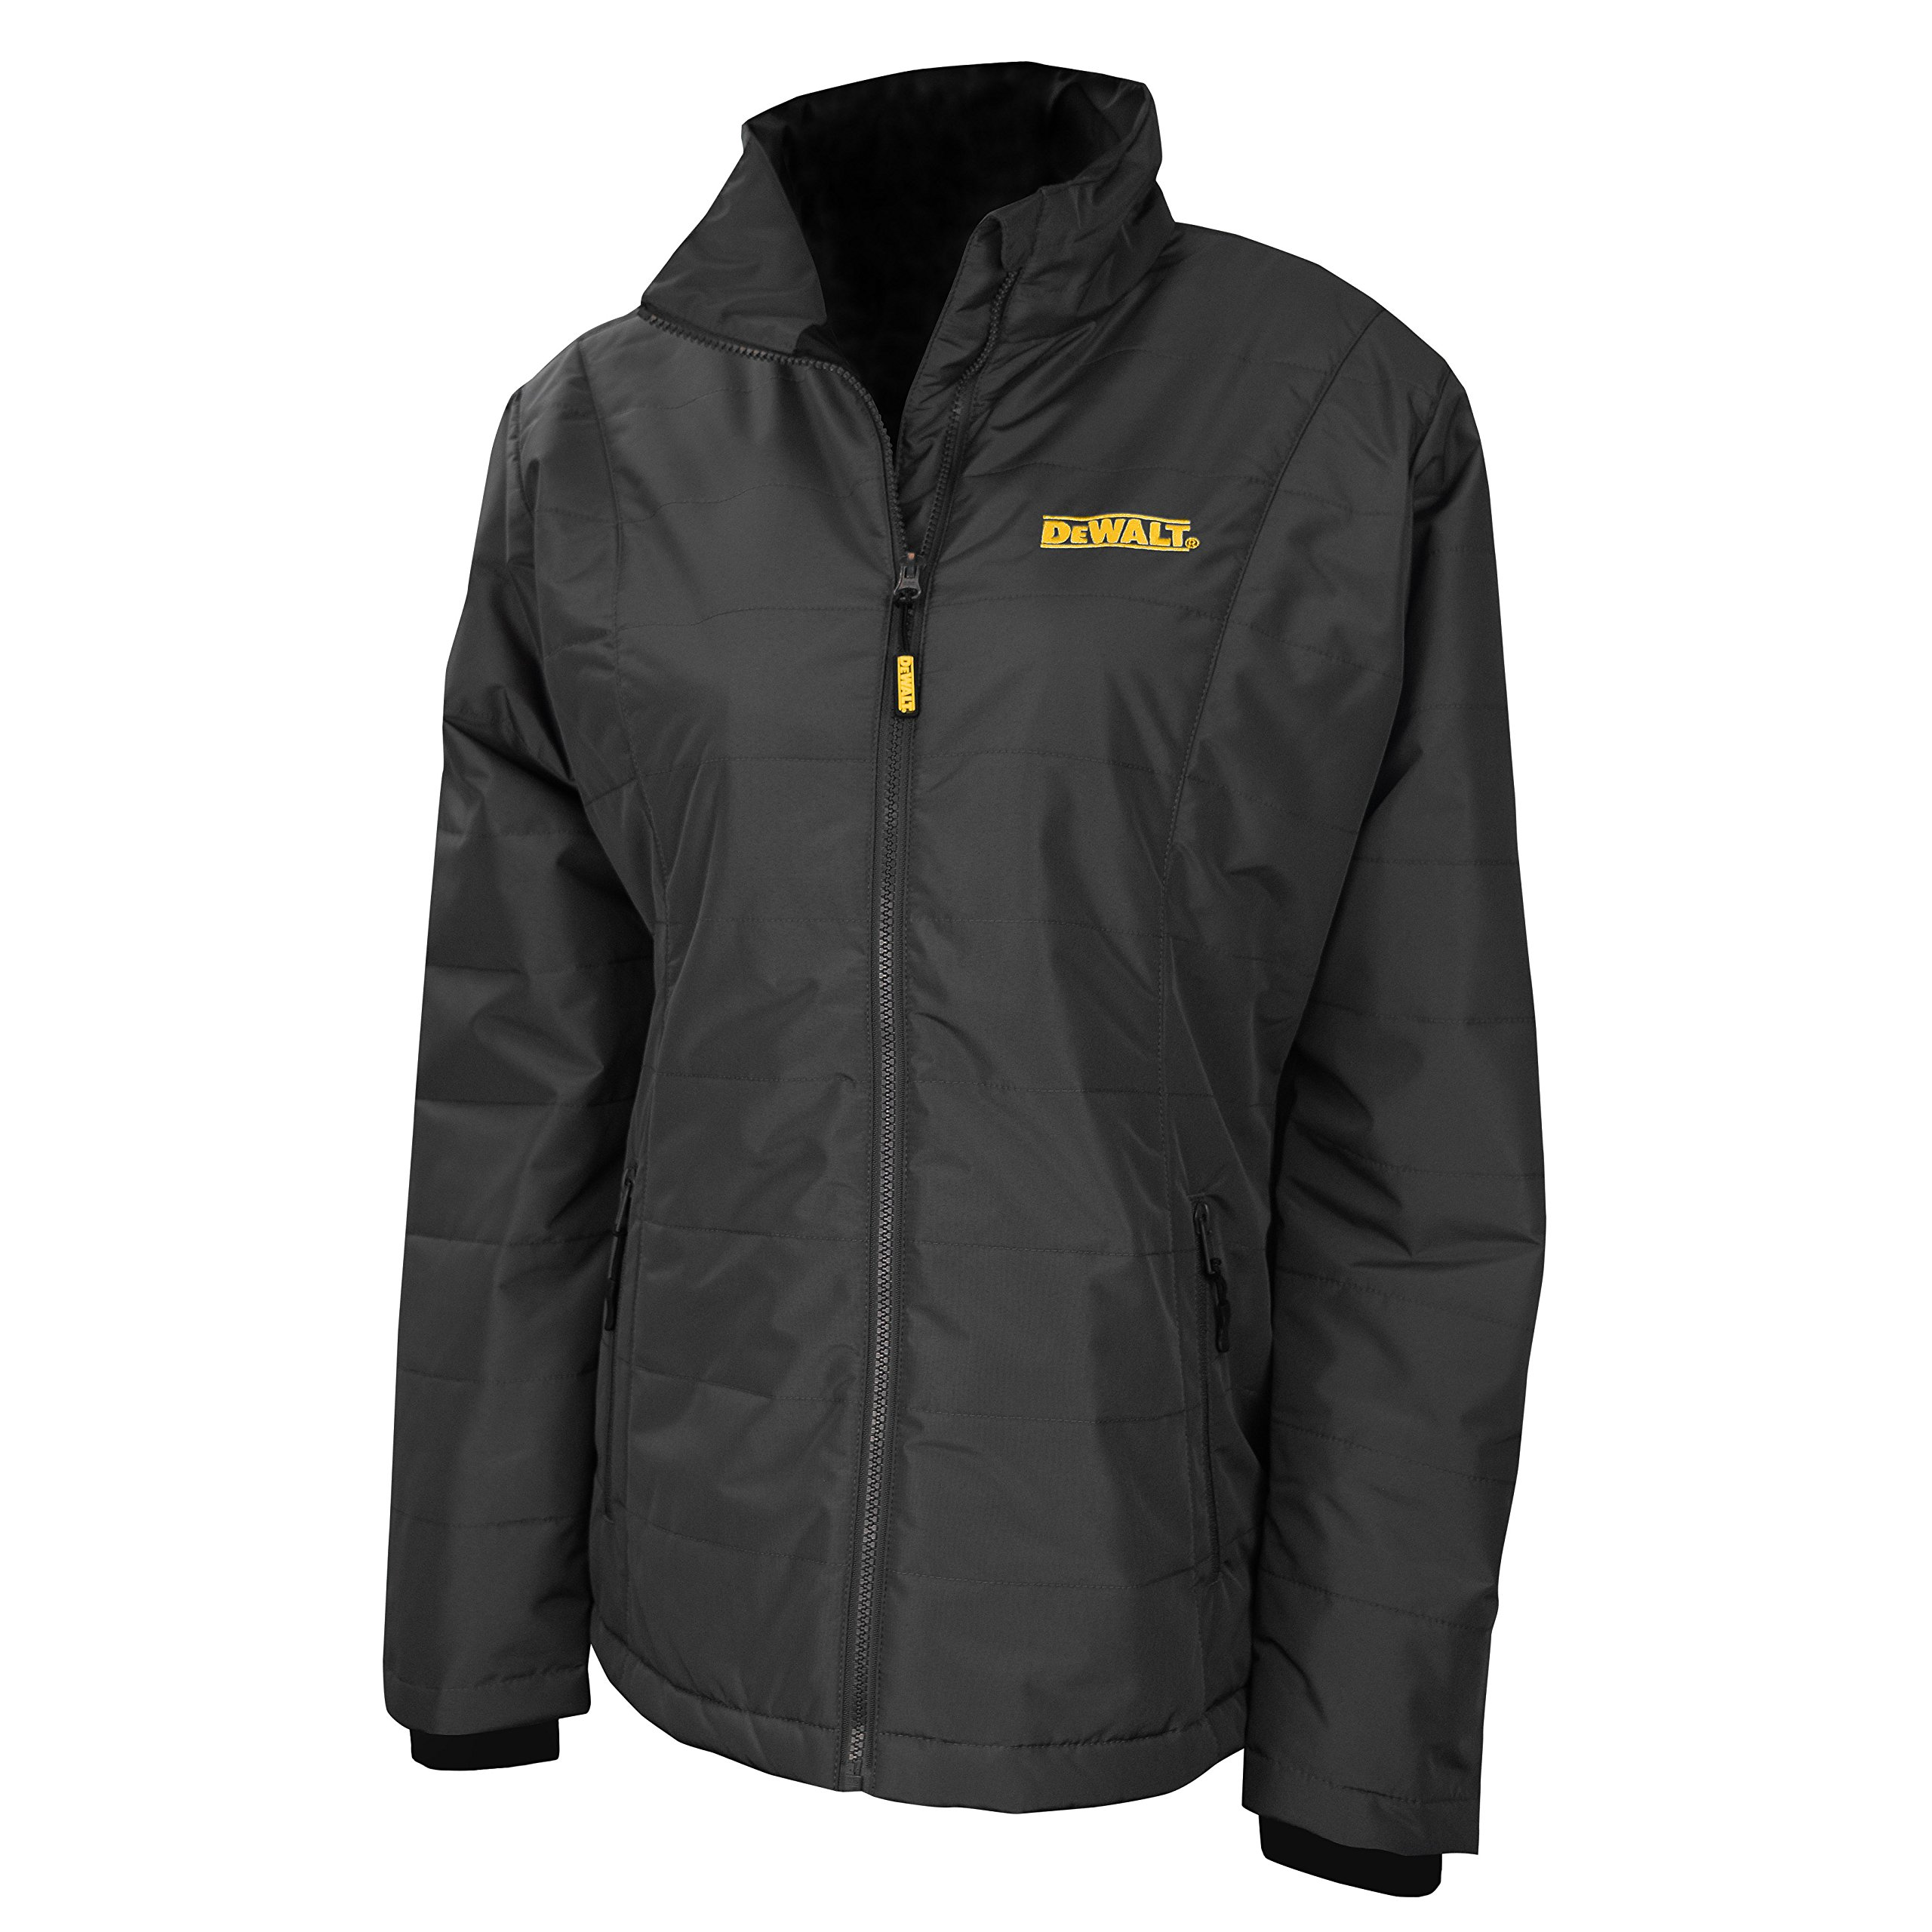 DEWALT DCHJ077D1-M Women's Quilted Heated Jacket, Medium, Black by DEWALT